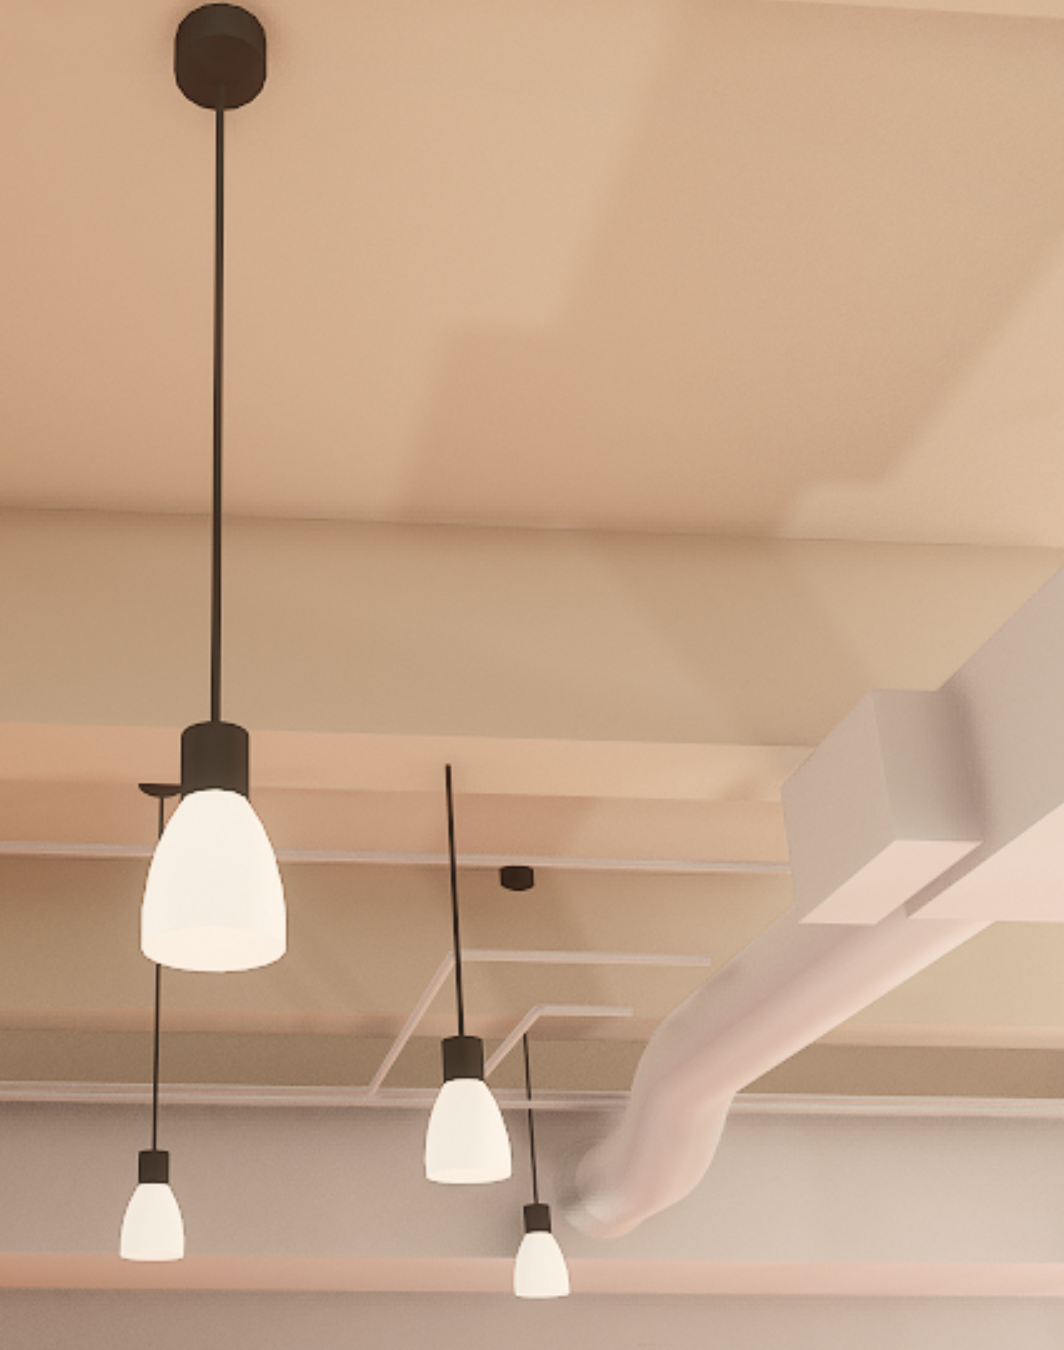 Bim Chapters Revit Lighting Fixtures Control Options